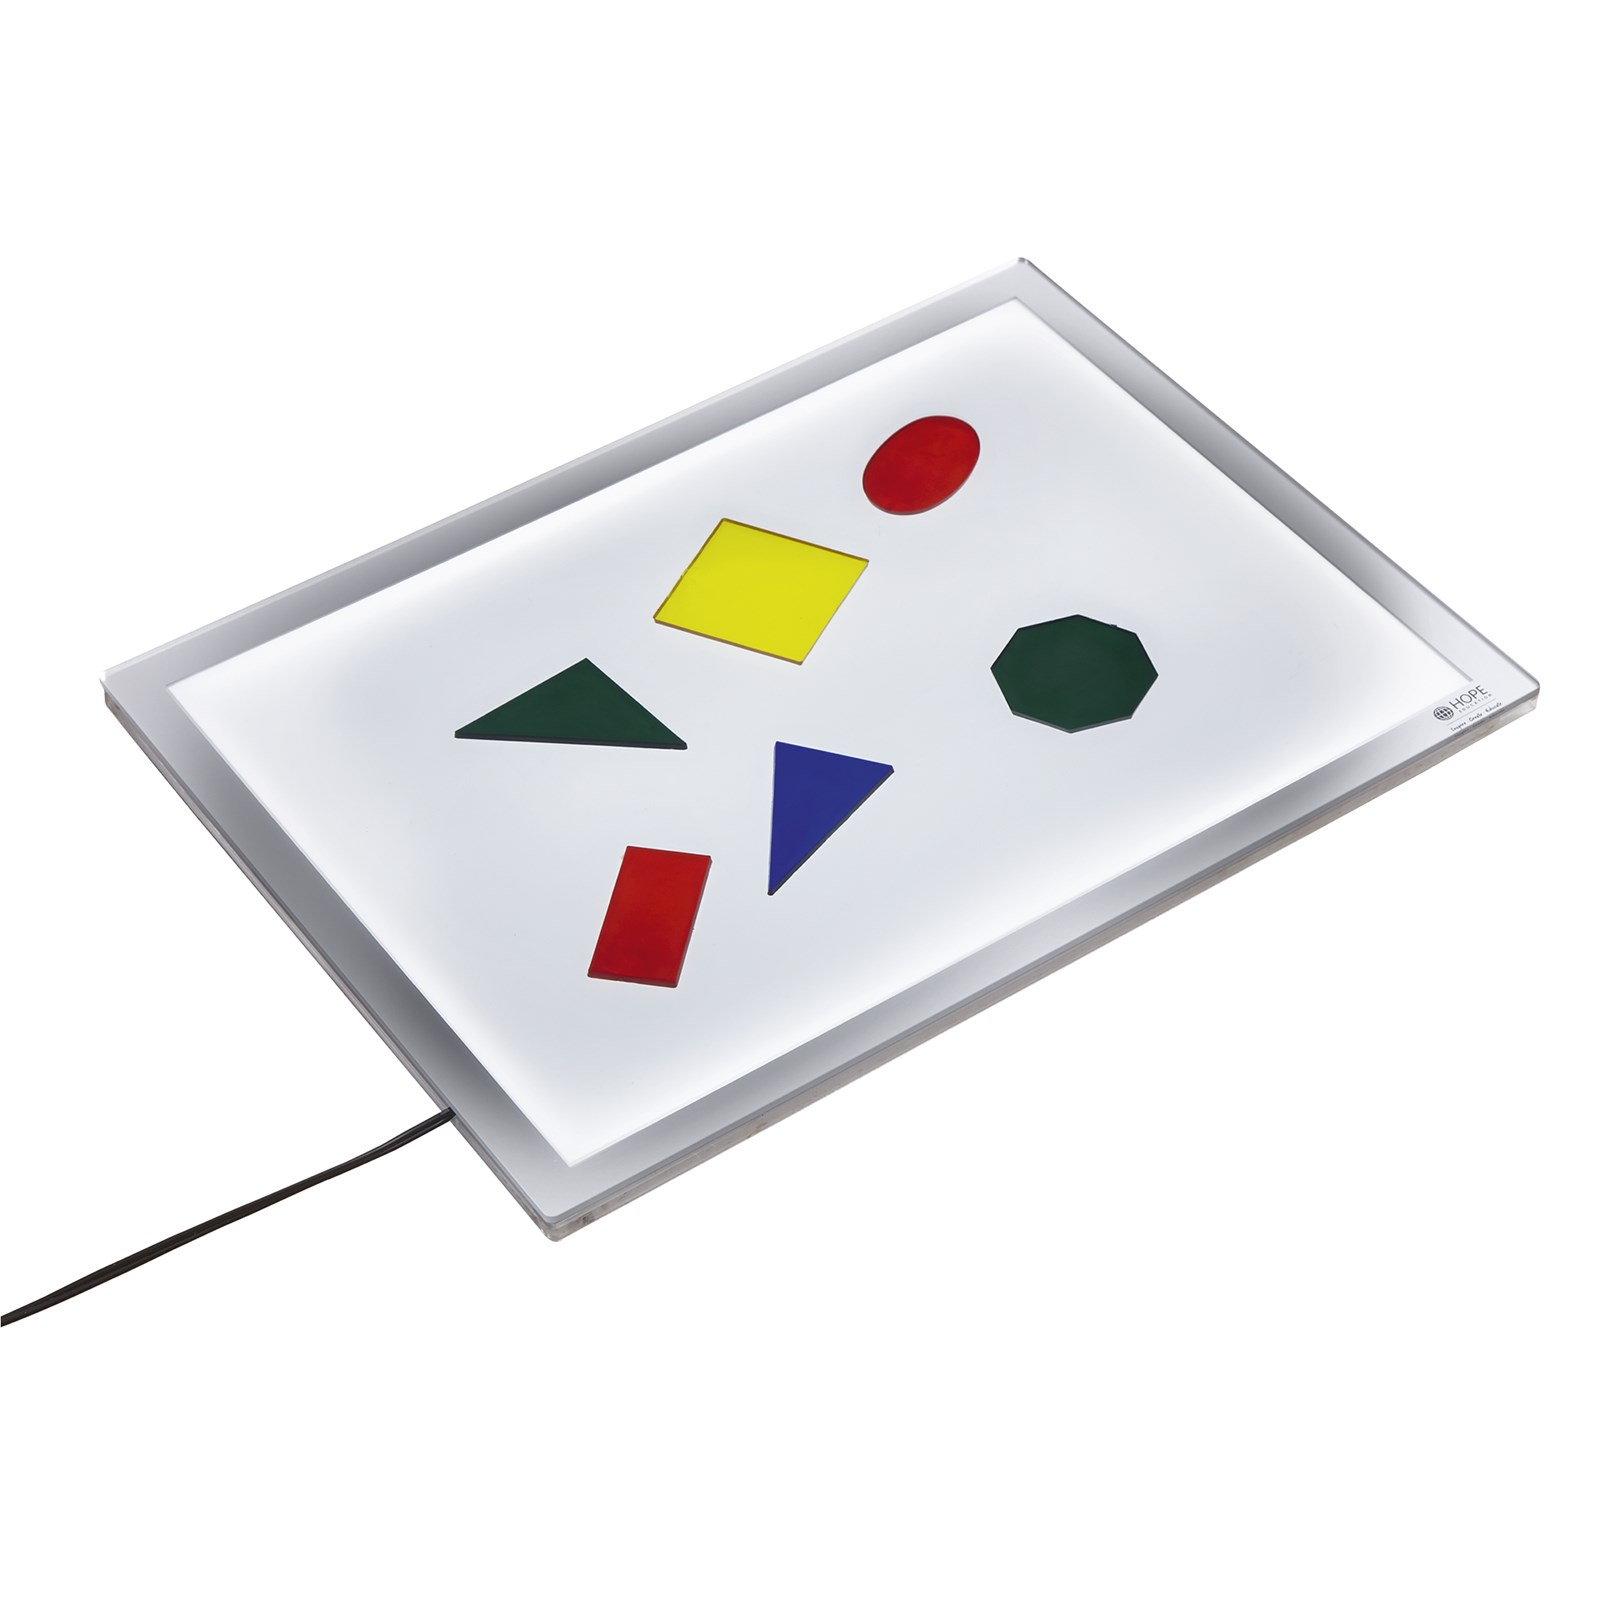 A2 Light Pad from Hope Education